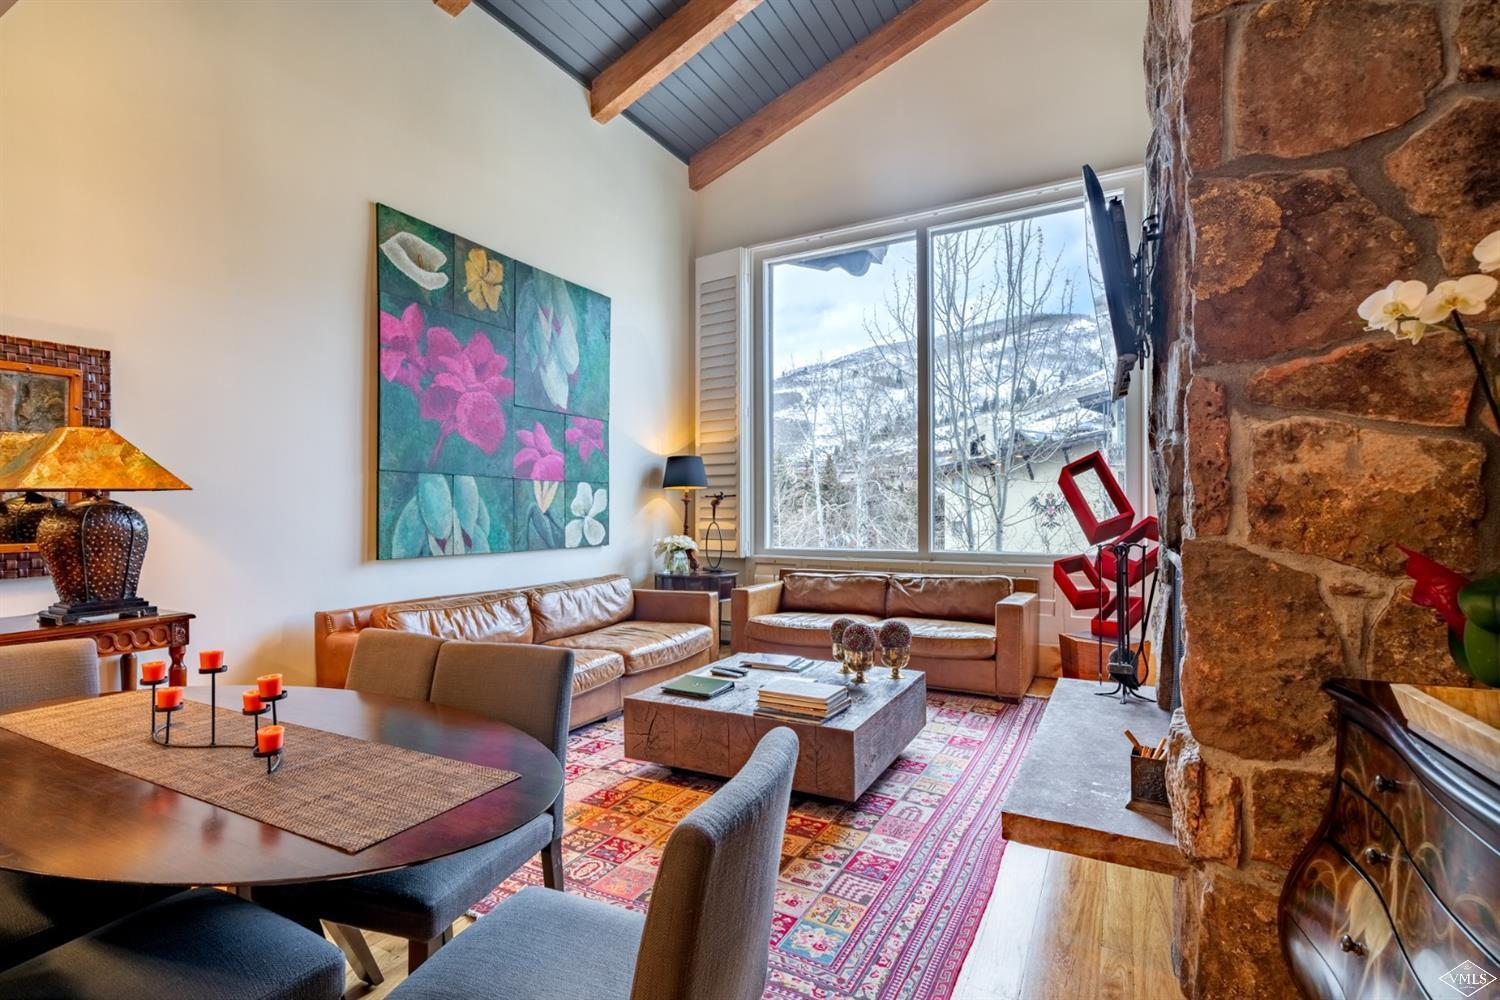 Rarely available Lodge at Vail three bedroom condominium with vaulted ceilings and views to Red Sandstone Mountain and the Village. Fantastic amenity package with garage parking, spa, workout facilities, and two of Vail's best pools. The Lodge also offers an outstanding rental program.